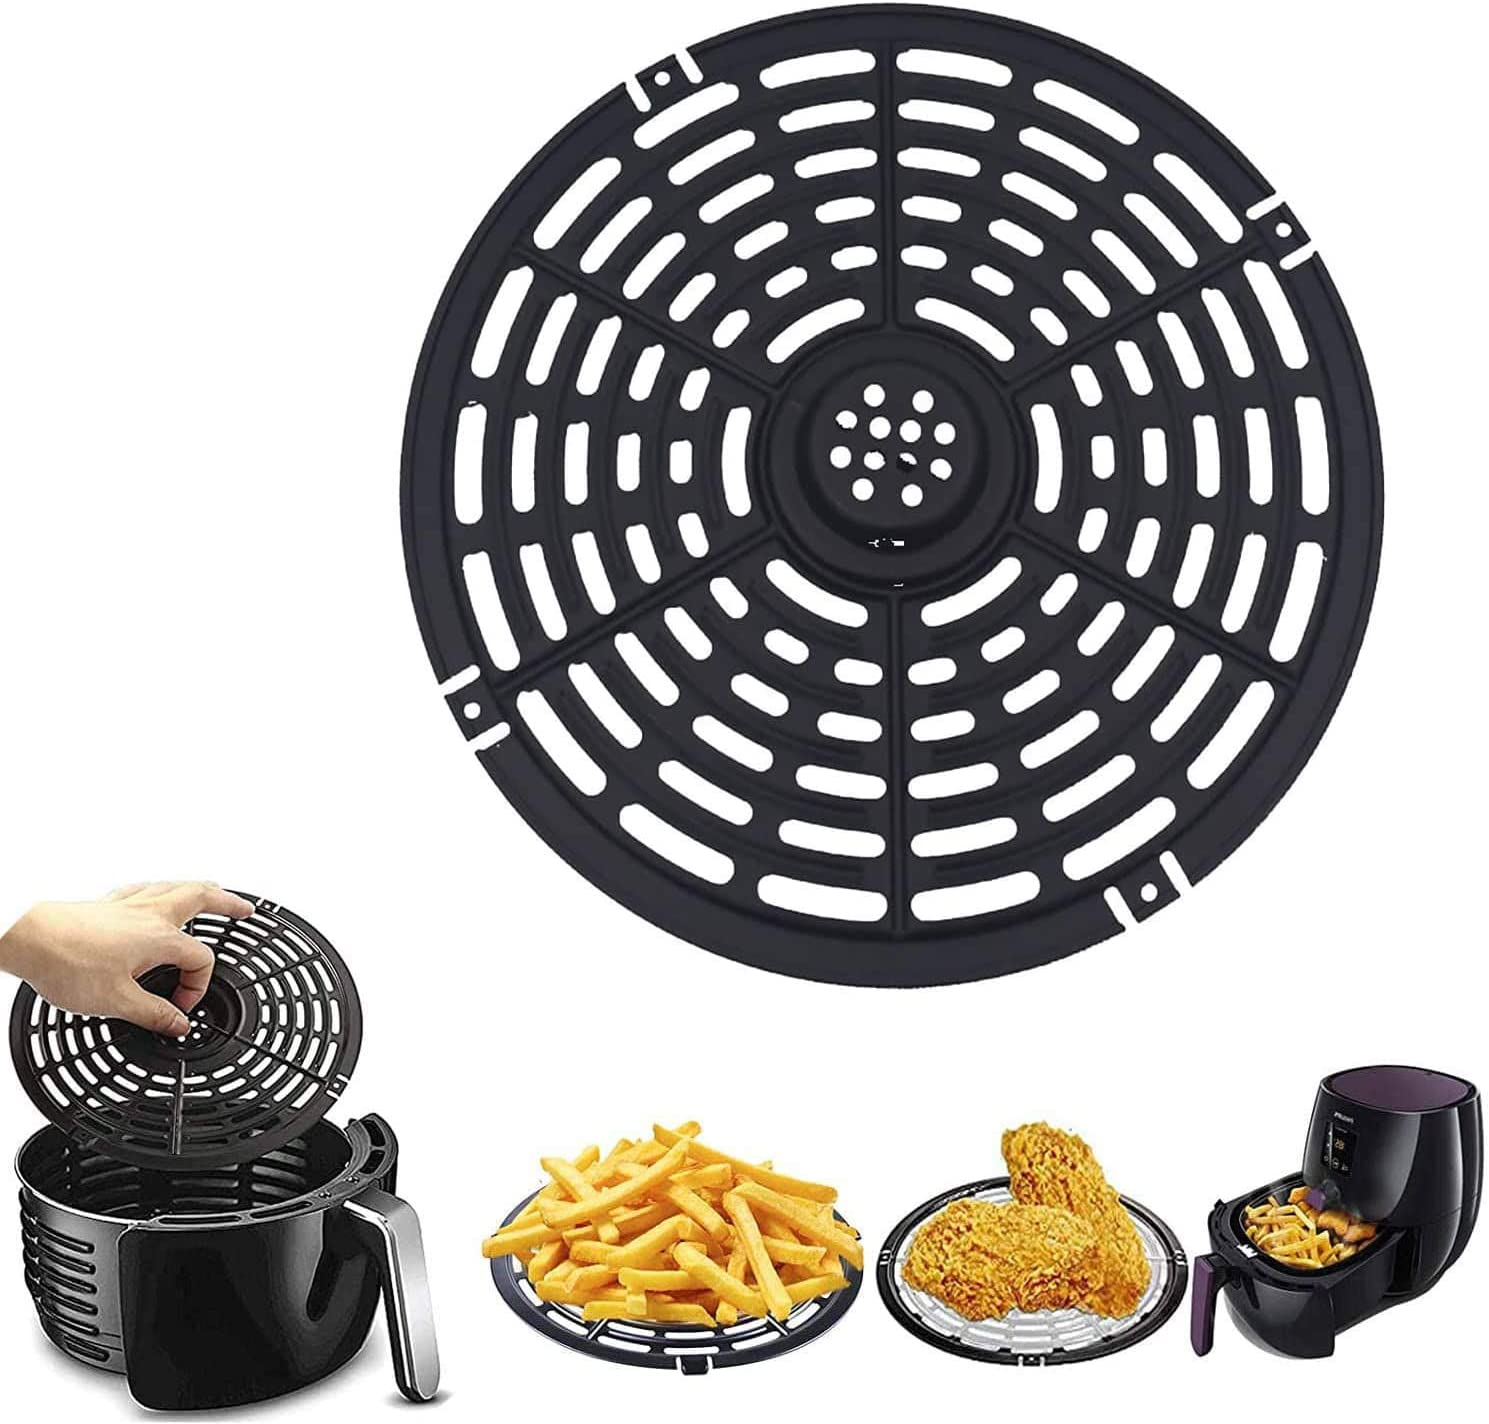 Air Fryer Grill Pan Replacement, 6.14'' Air Fryer Replacement Parts, Air fryer Grill Plate Fry Pan Accessories, Non-Stick Fry Pan, Dishwasher Safe (6.14 In)